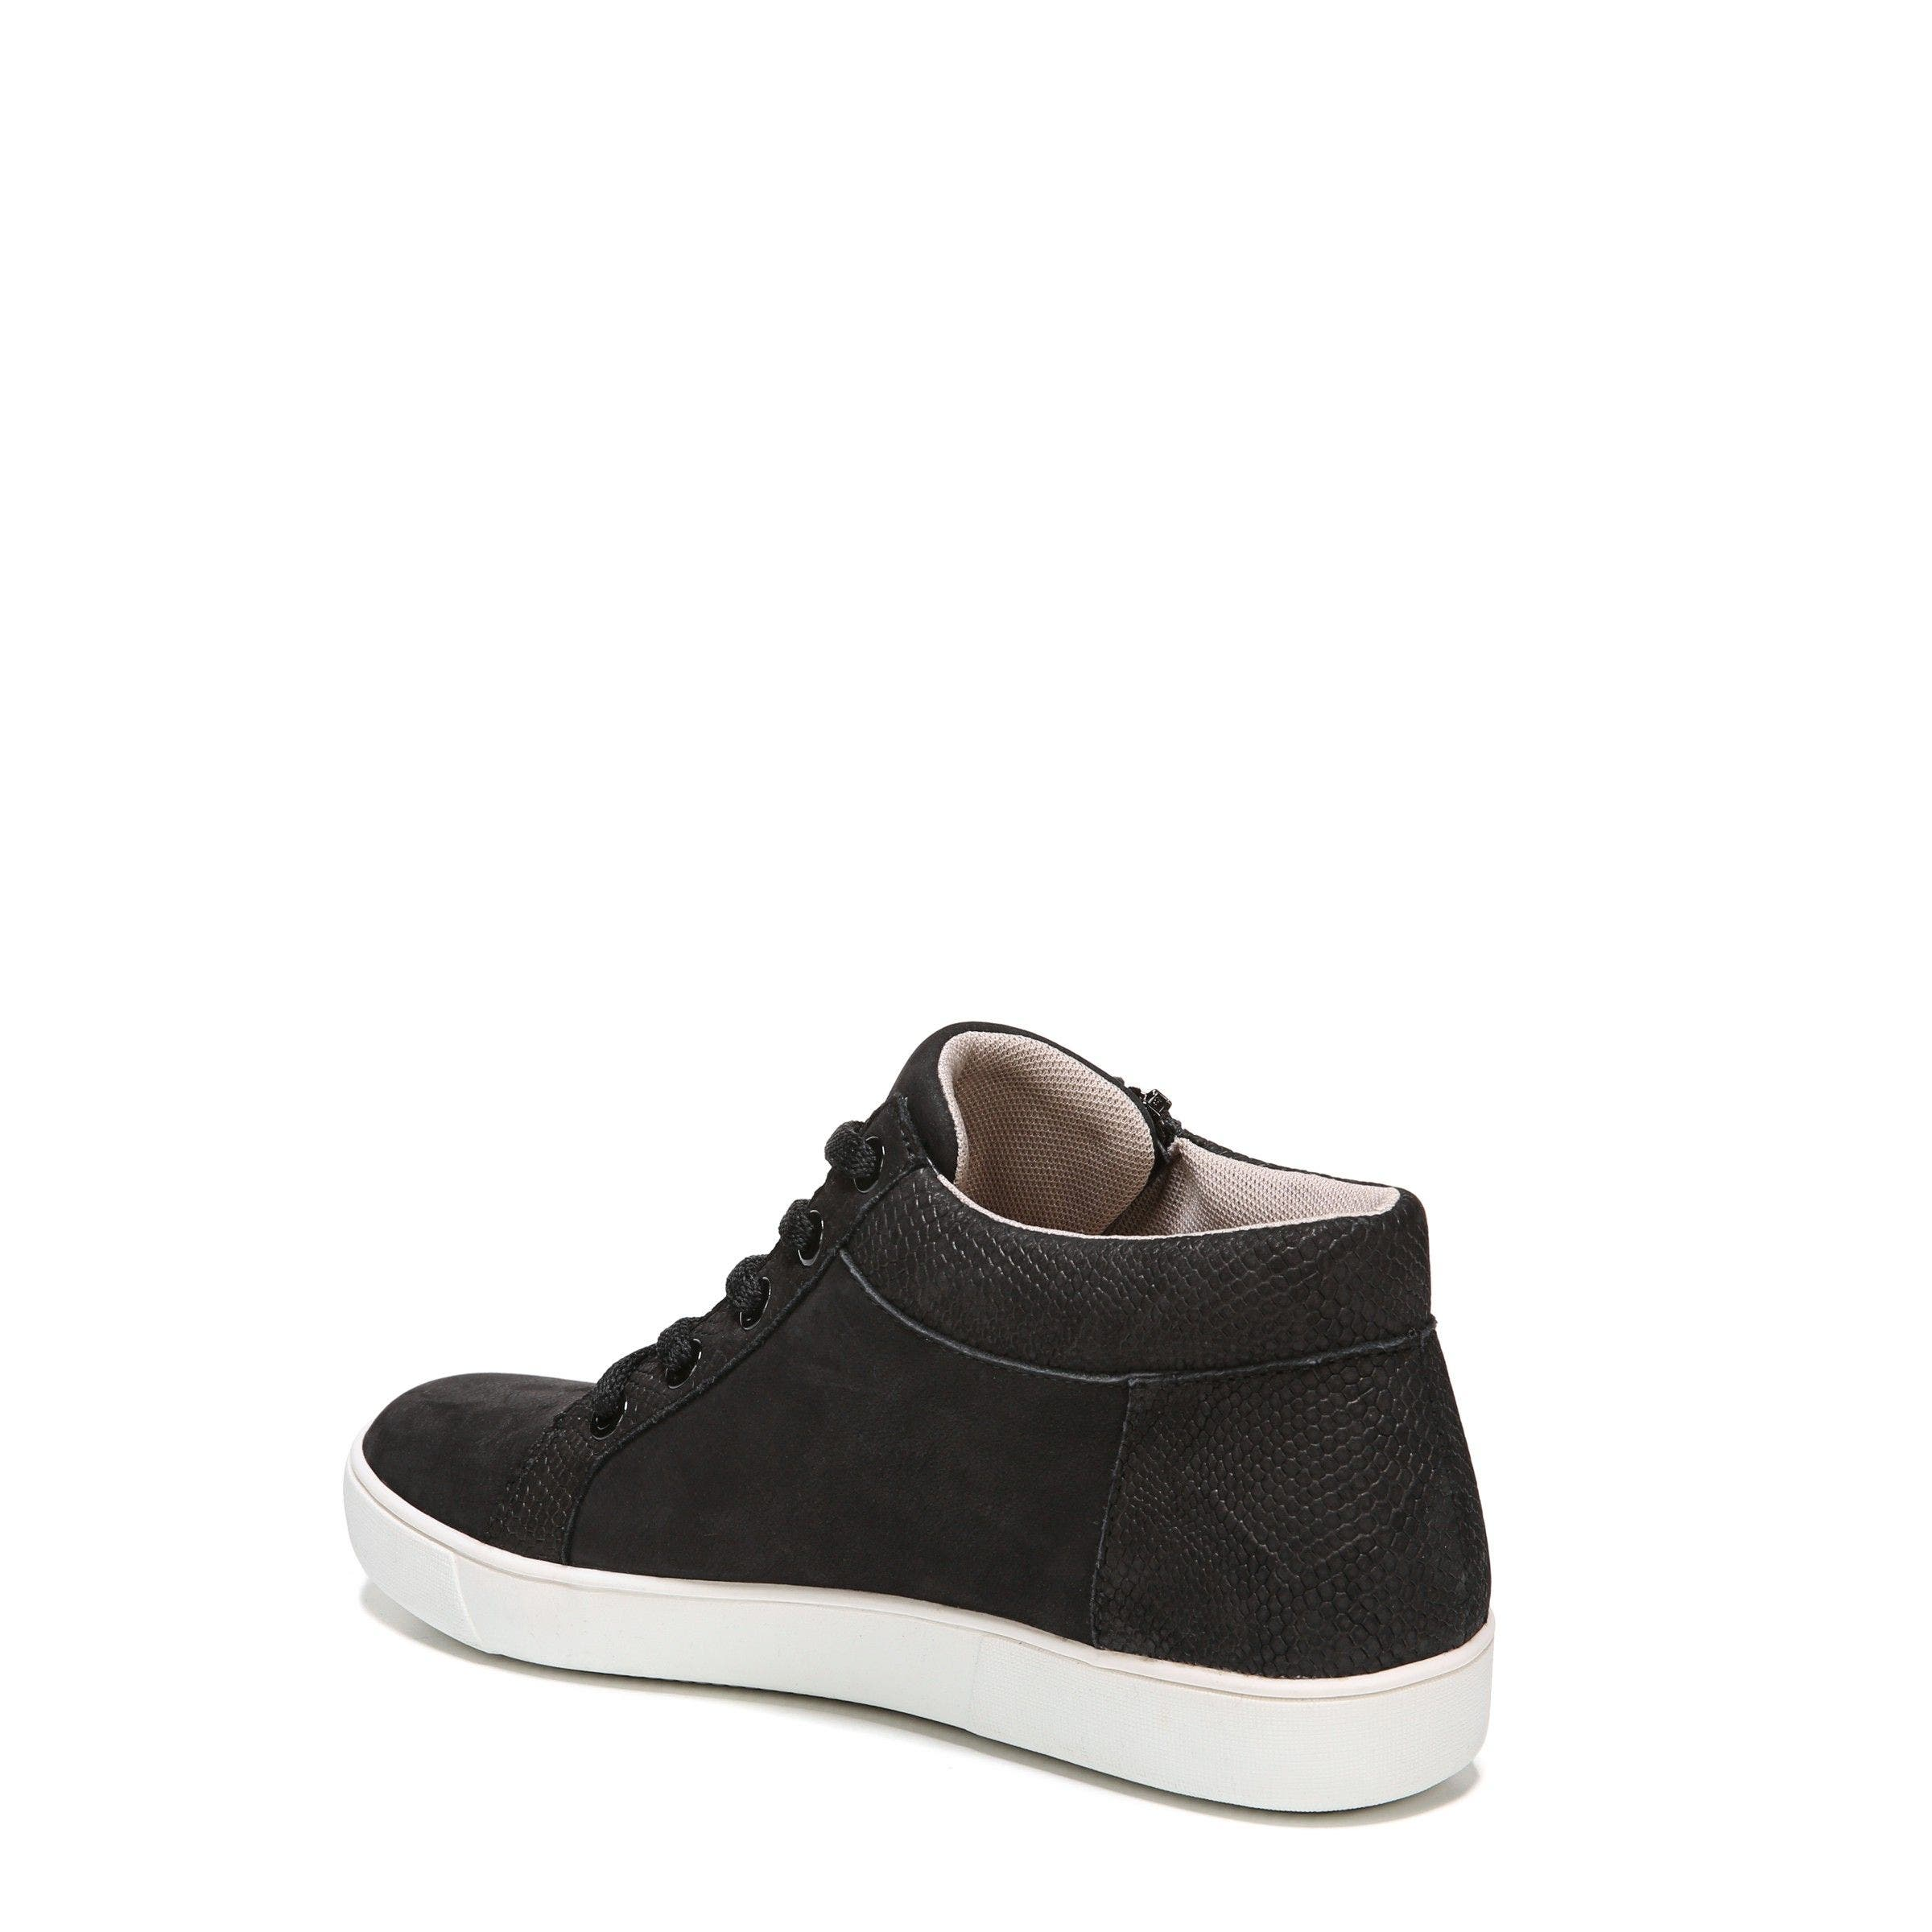 Alternate Image 2  - Naturalizer Motley Sneaker (Women)